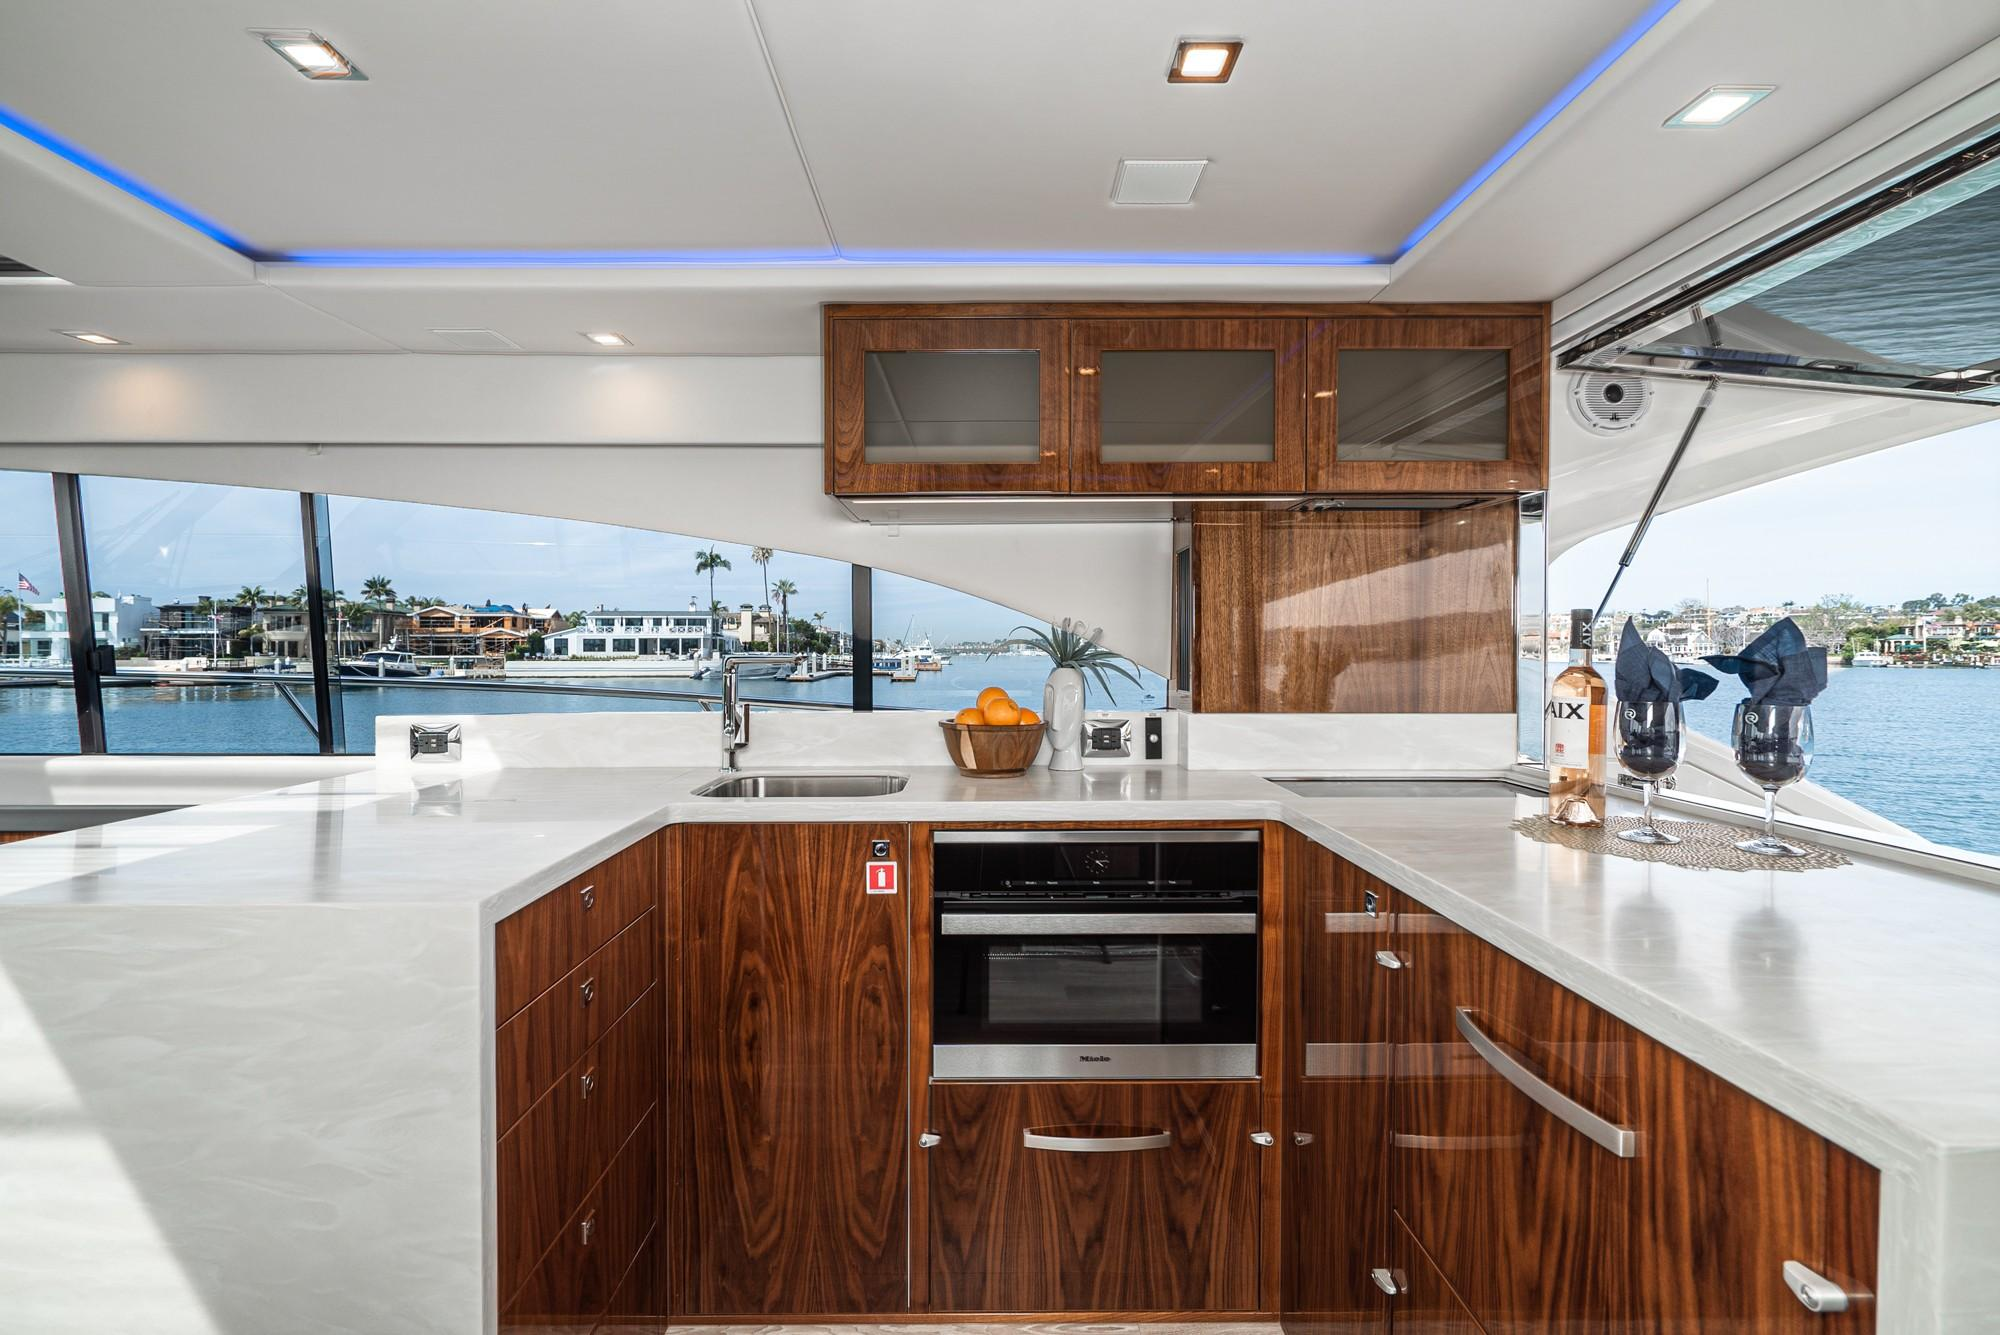 2020 Riviera 5400 Sport Yacht #R076 inventory image at Sun Country Coastal in Newport Beach